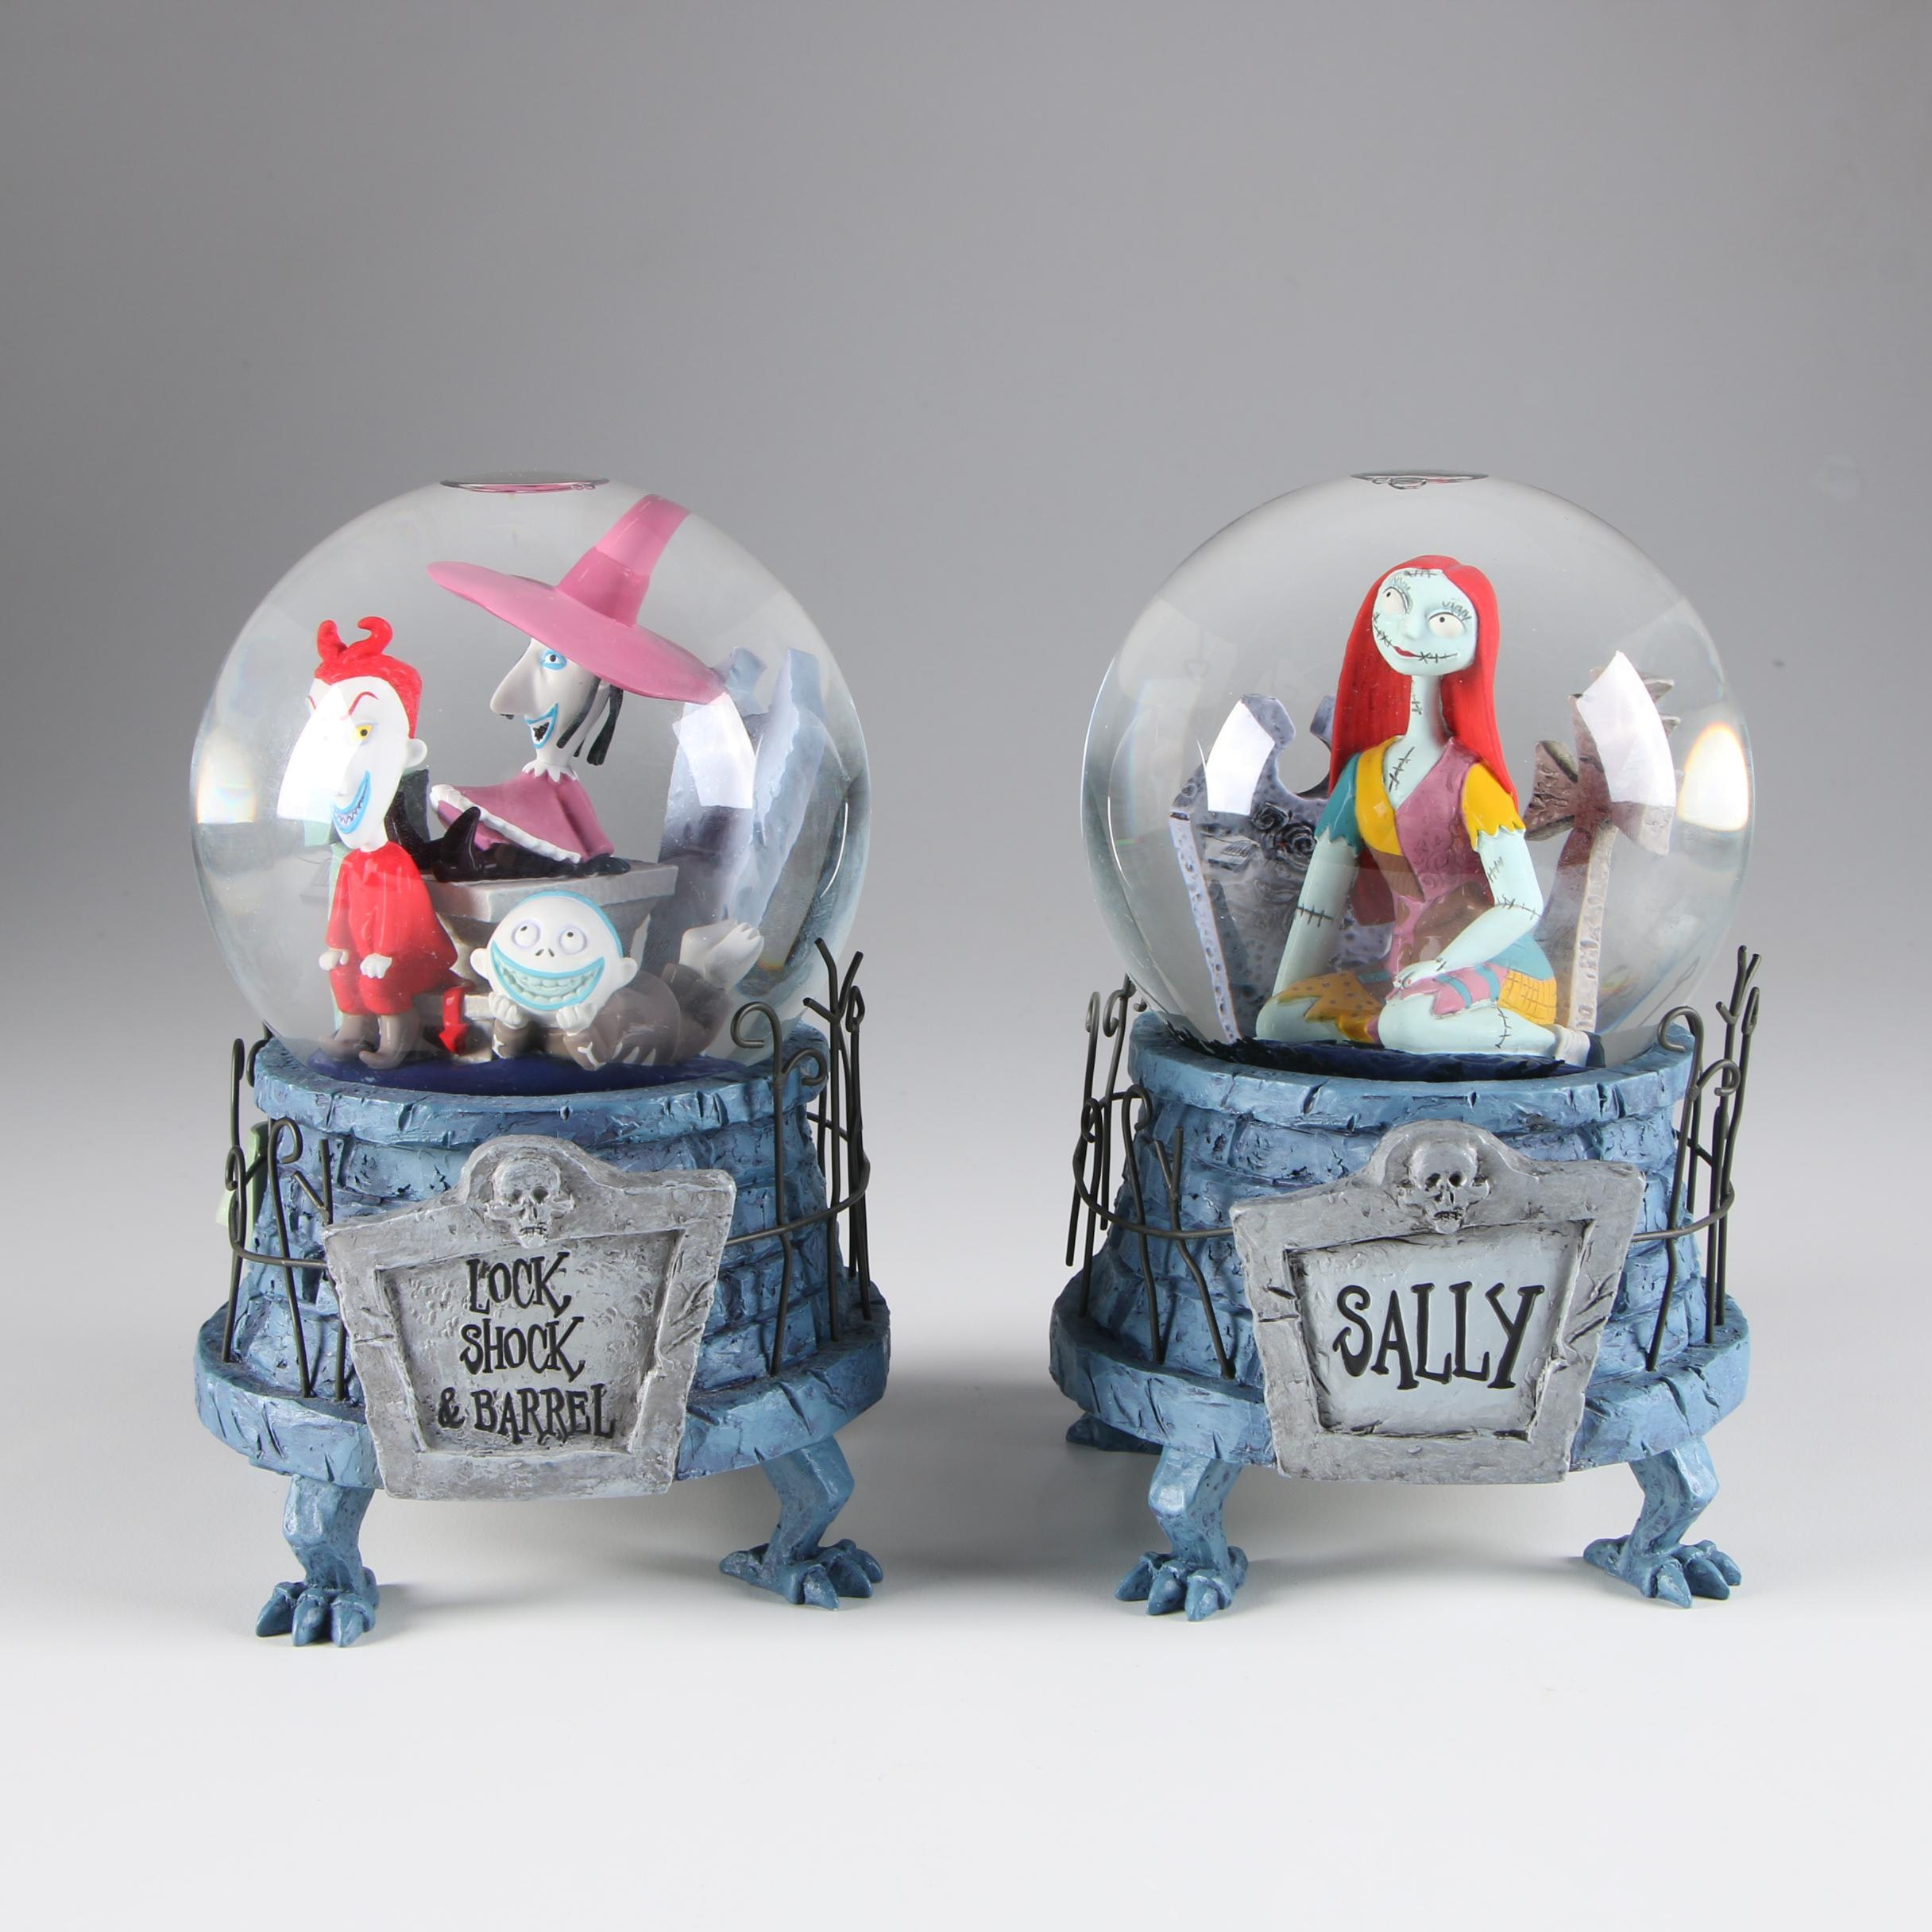 """Nightmare Before Christmas"" ""Lock, Shock & Barrel"" and ""Sally"" Snow Globes"